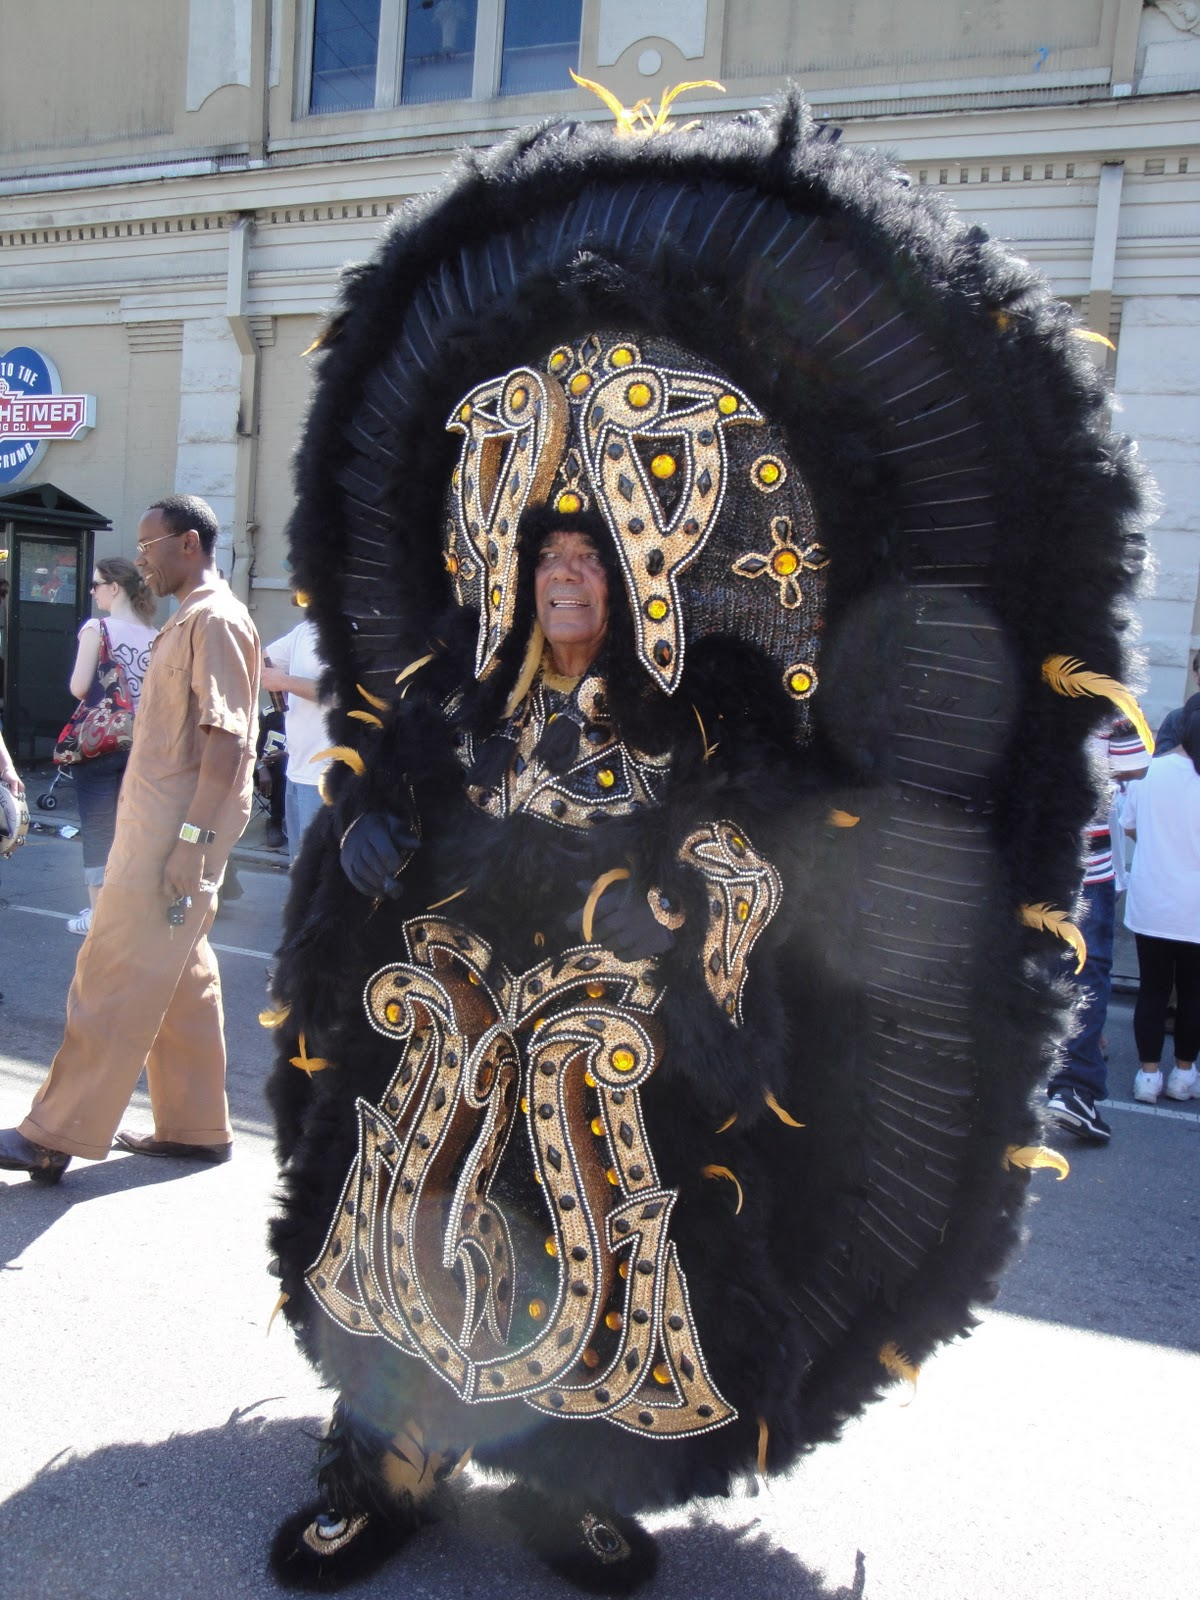 The costumes are one of the most important elements of the competition and participants spend all year carefully (and secretly) creating them. & Midori Stories: Mardi Gras Indians 1